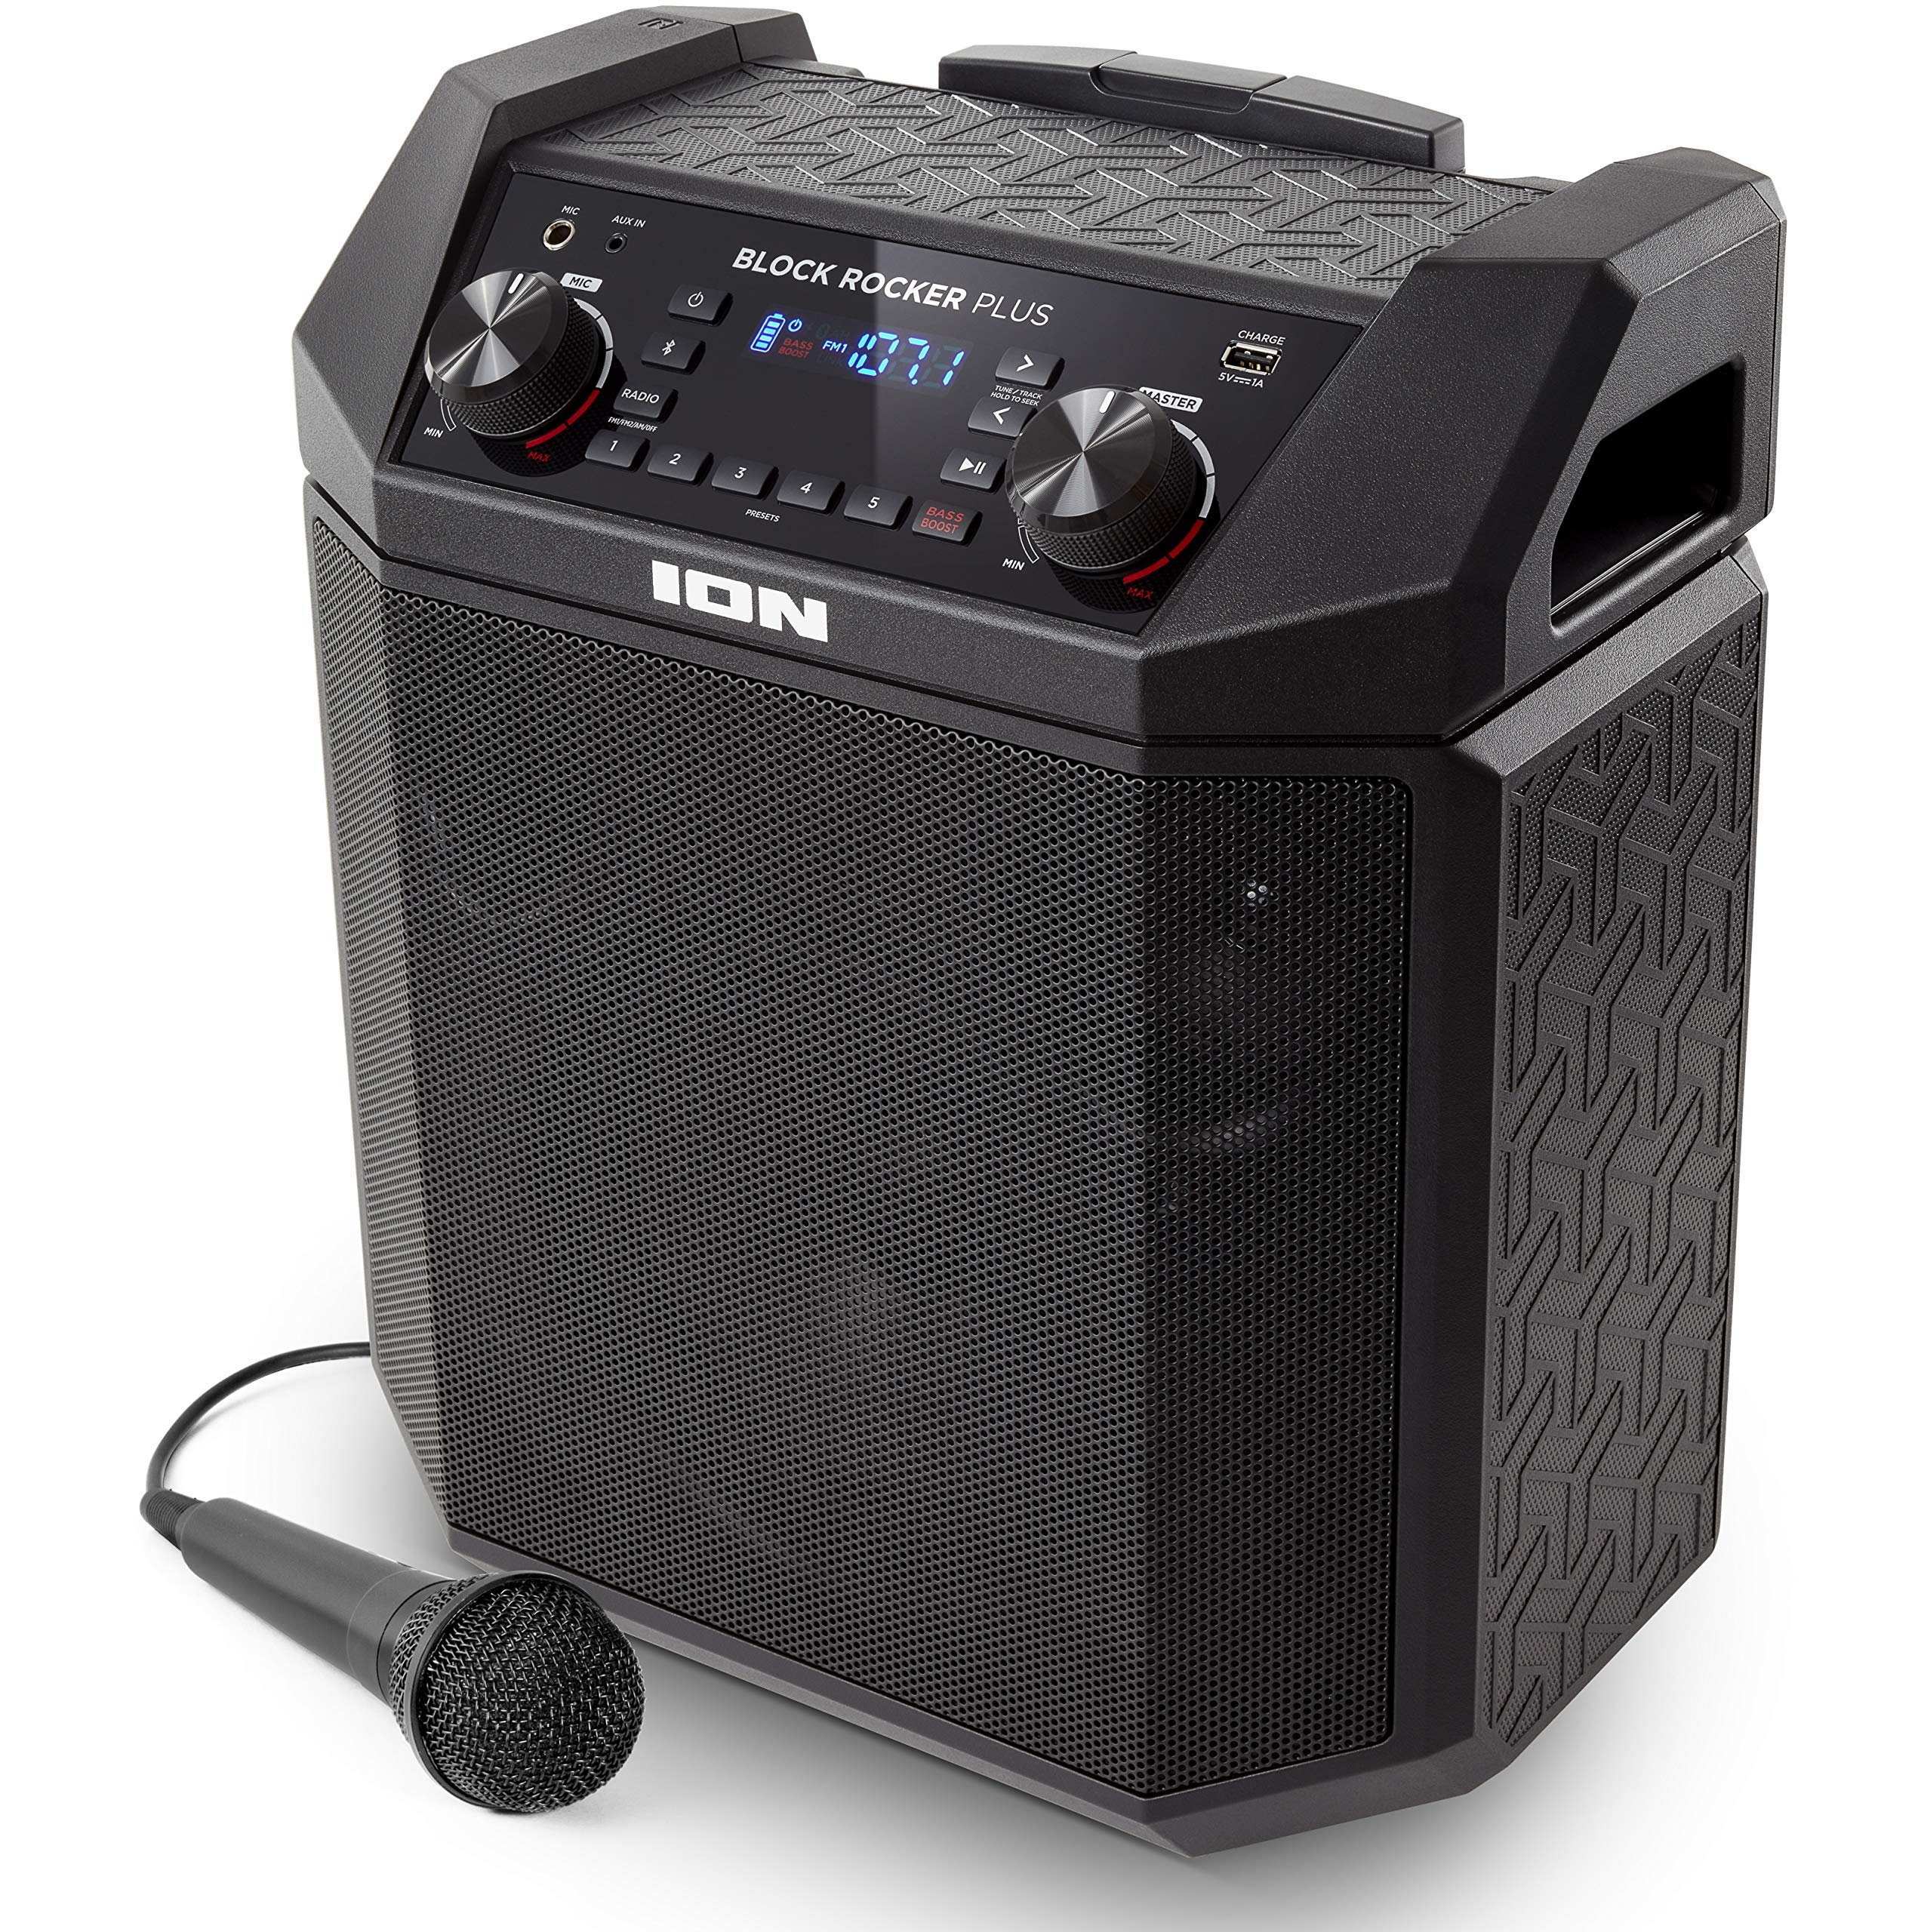 Ion Audio Block Rocker Plus, 100W Portable Speaker, Battery Powered with Bluetooth Connectivity, Microphone and Cable, AM/FM Radio, Wheels and Telescopic Handle and USB Charging (Renewed) by ION Audio